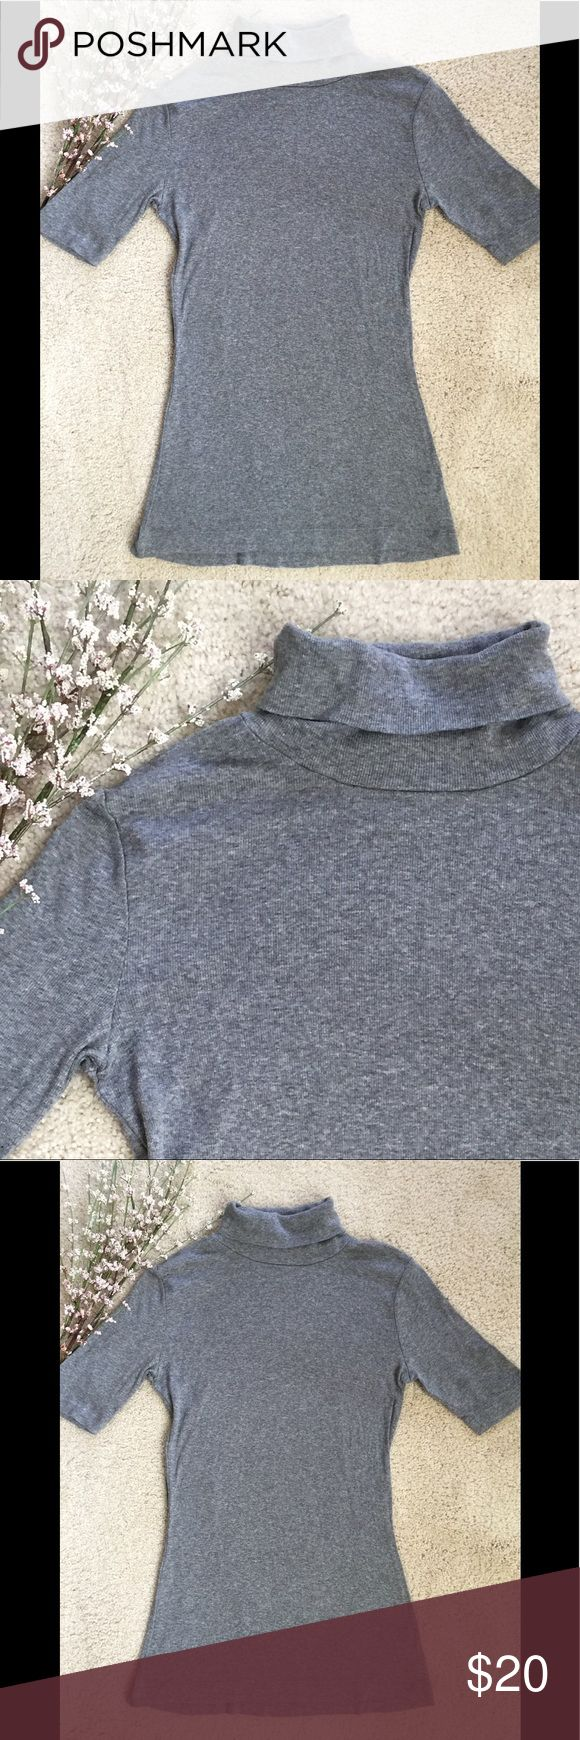 🆕 Listing✨So Soft Grey Turtleneck Sweater Top 🍁 Gorgeous 3/4 Length sleeved heavy Cotton blend Knit Turtleneck Sweater. So Soft, Warm & Comfy. Can also be worn by a Med. Velvety Soft! Perfect for Fall 🍁🍂 Sweaters Cowl & Turtlenecks